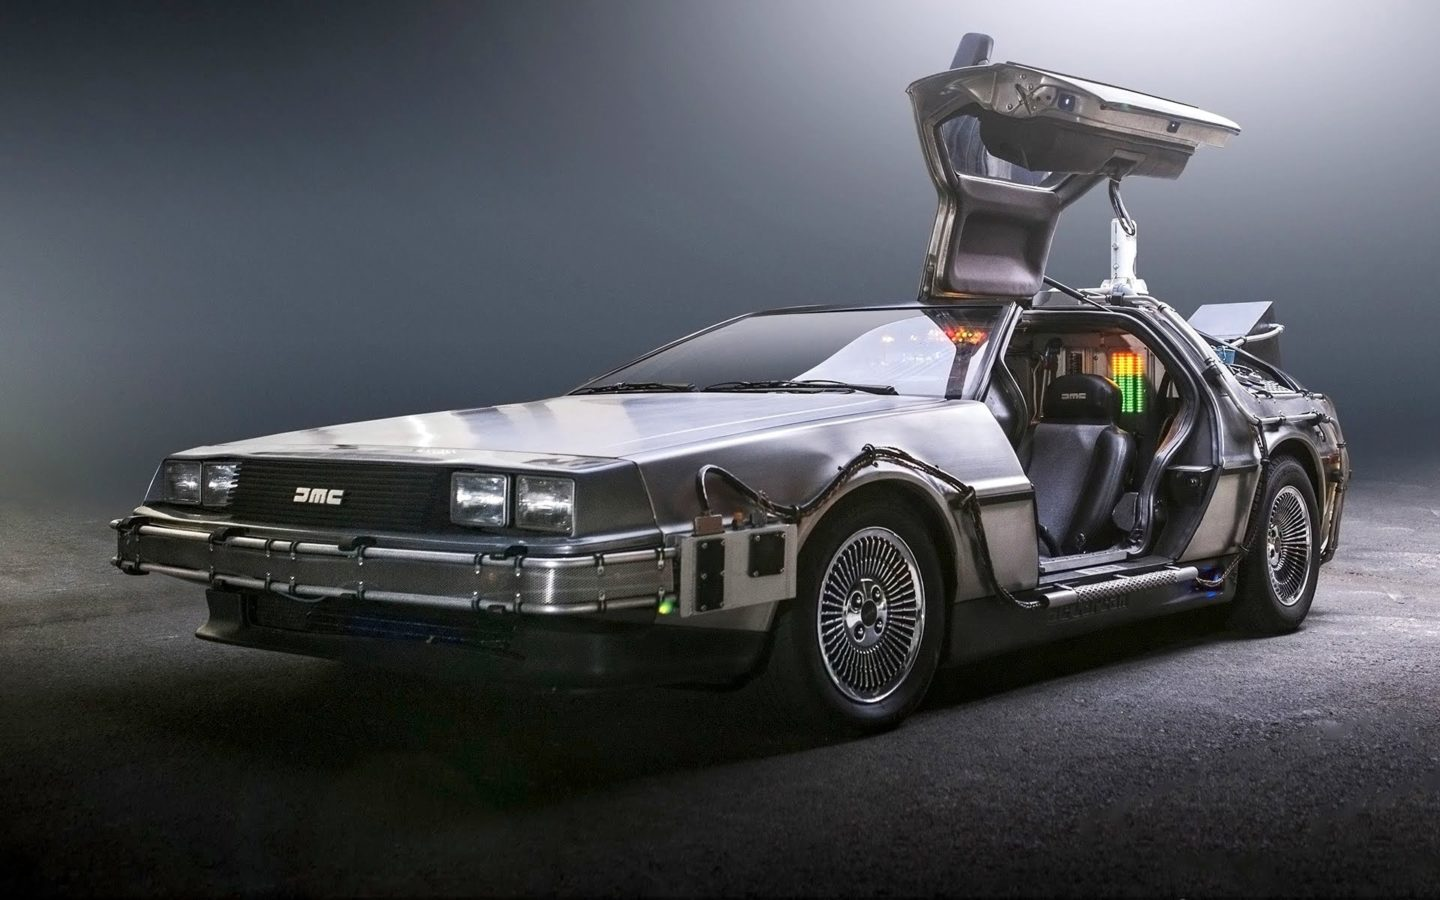 7 iconic movie cars that are eternally glorified in pop culture